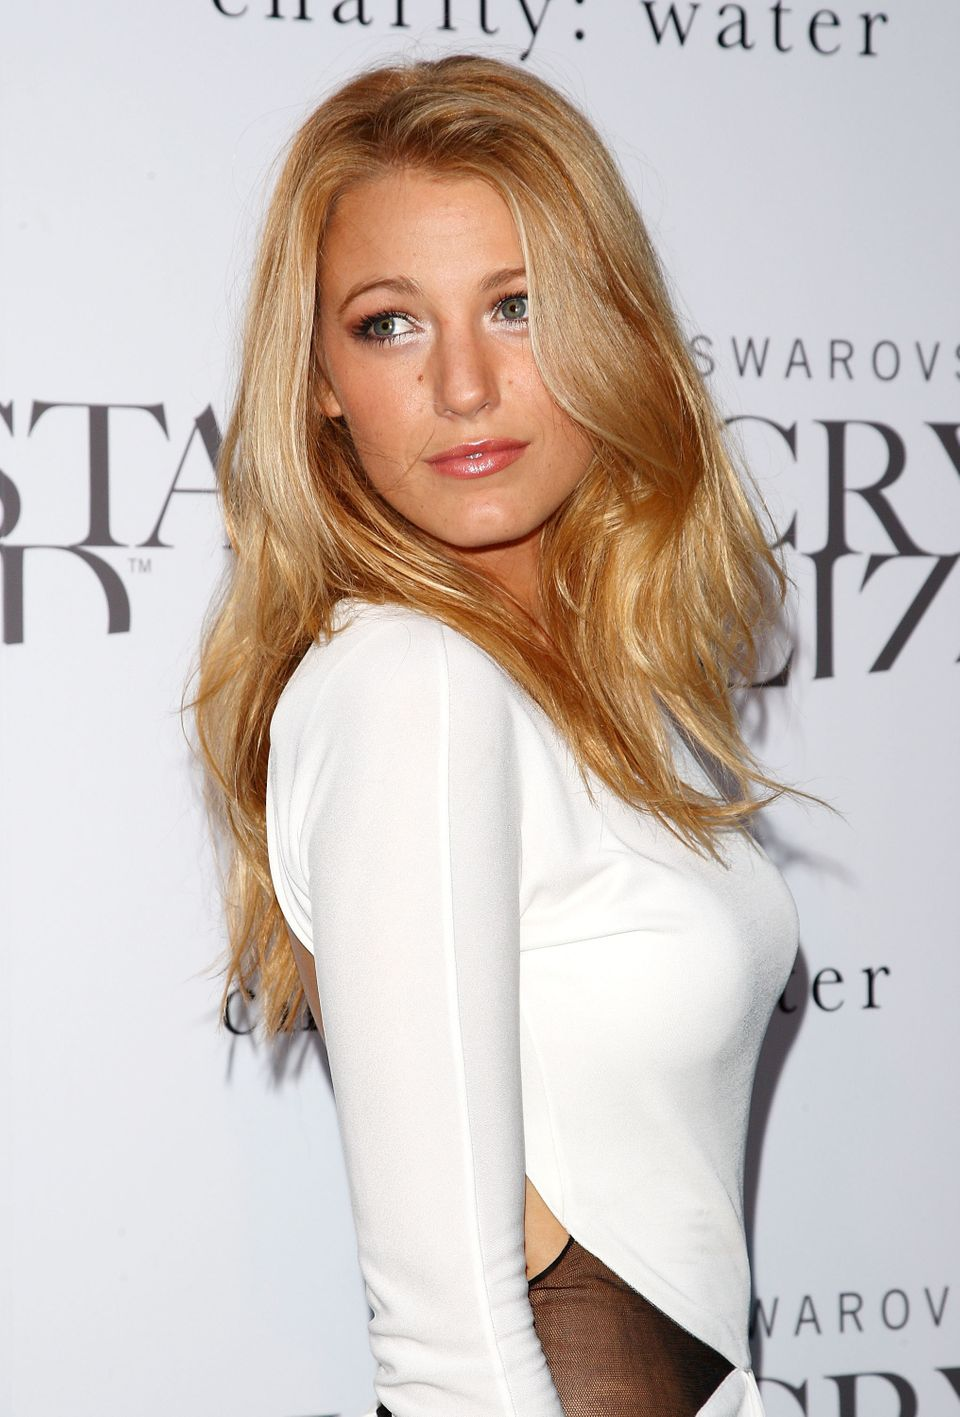 Blake Lively Shares Her Own 'Terrifying' Sexual Harassment ... Blake Lively